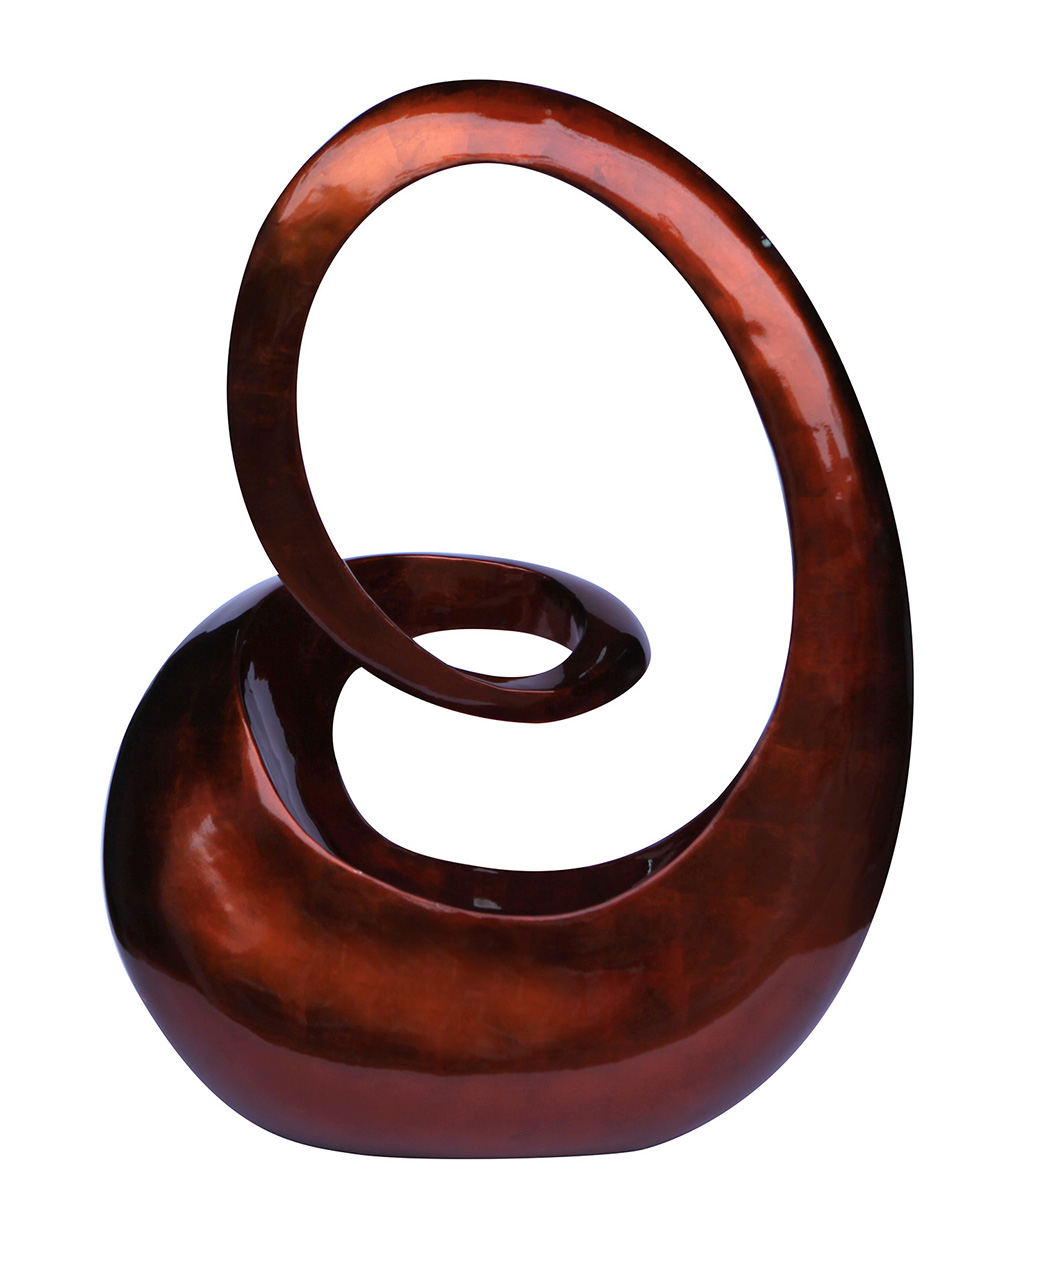 DL01-B-Talia Design 24 Inch Swirl Sculpture